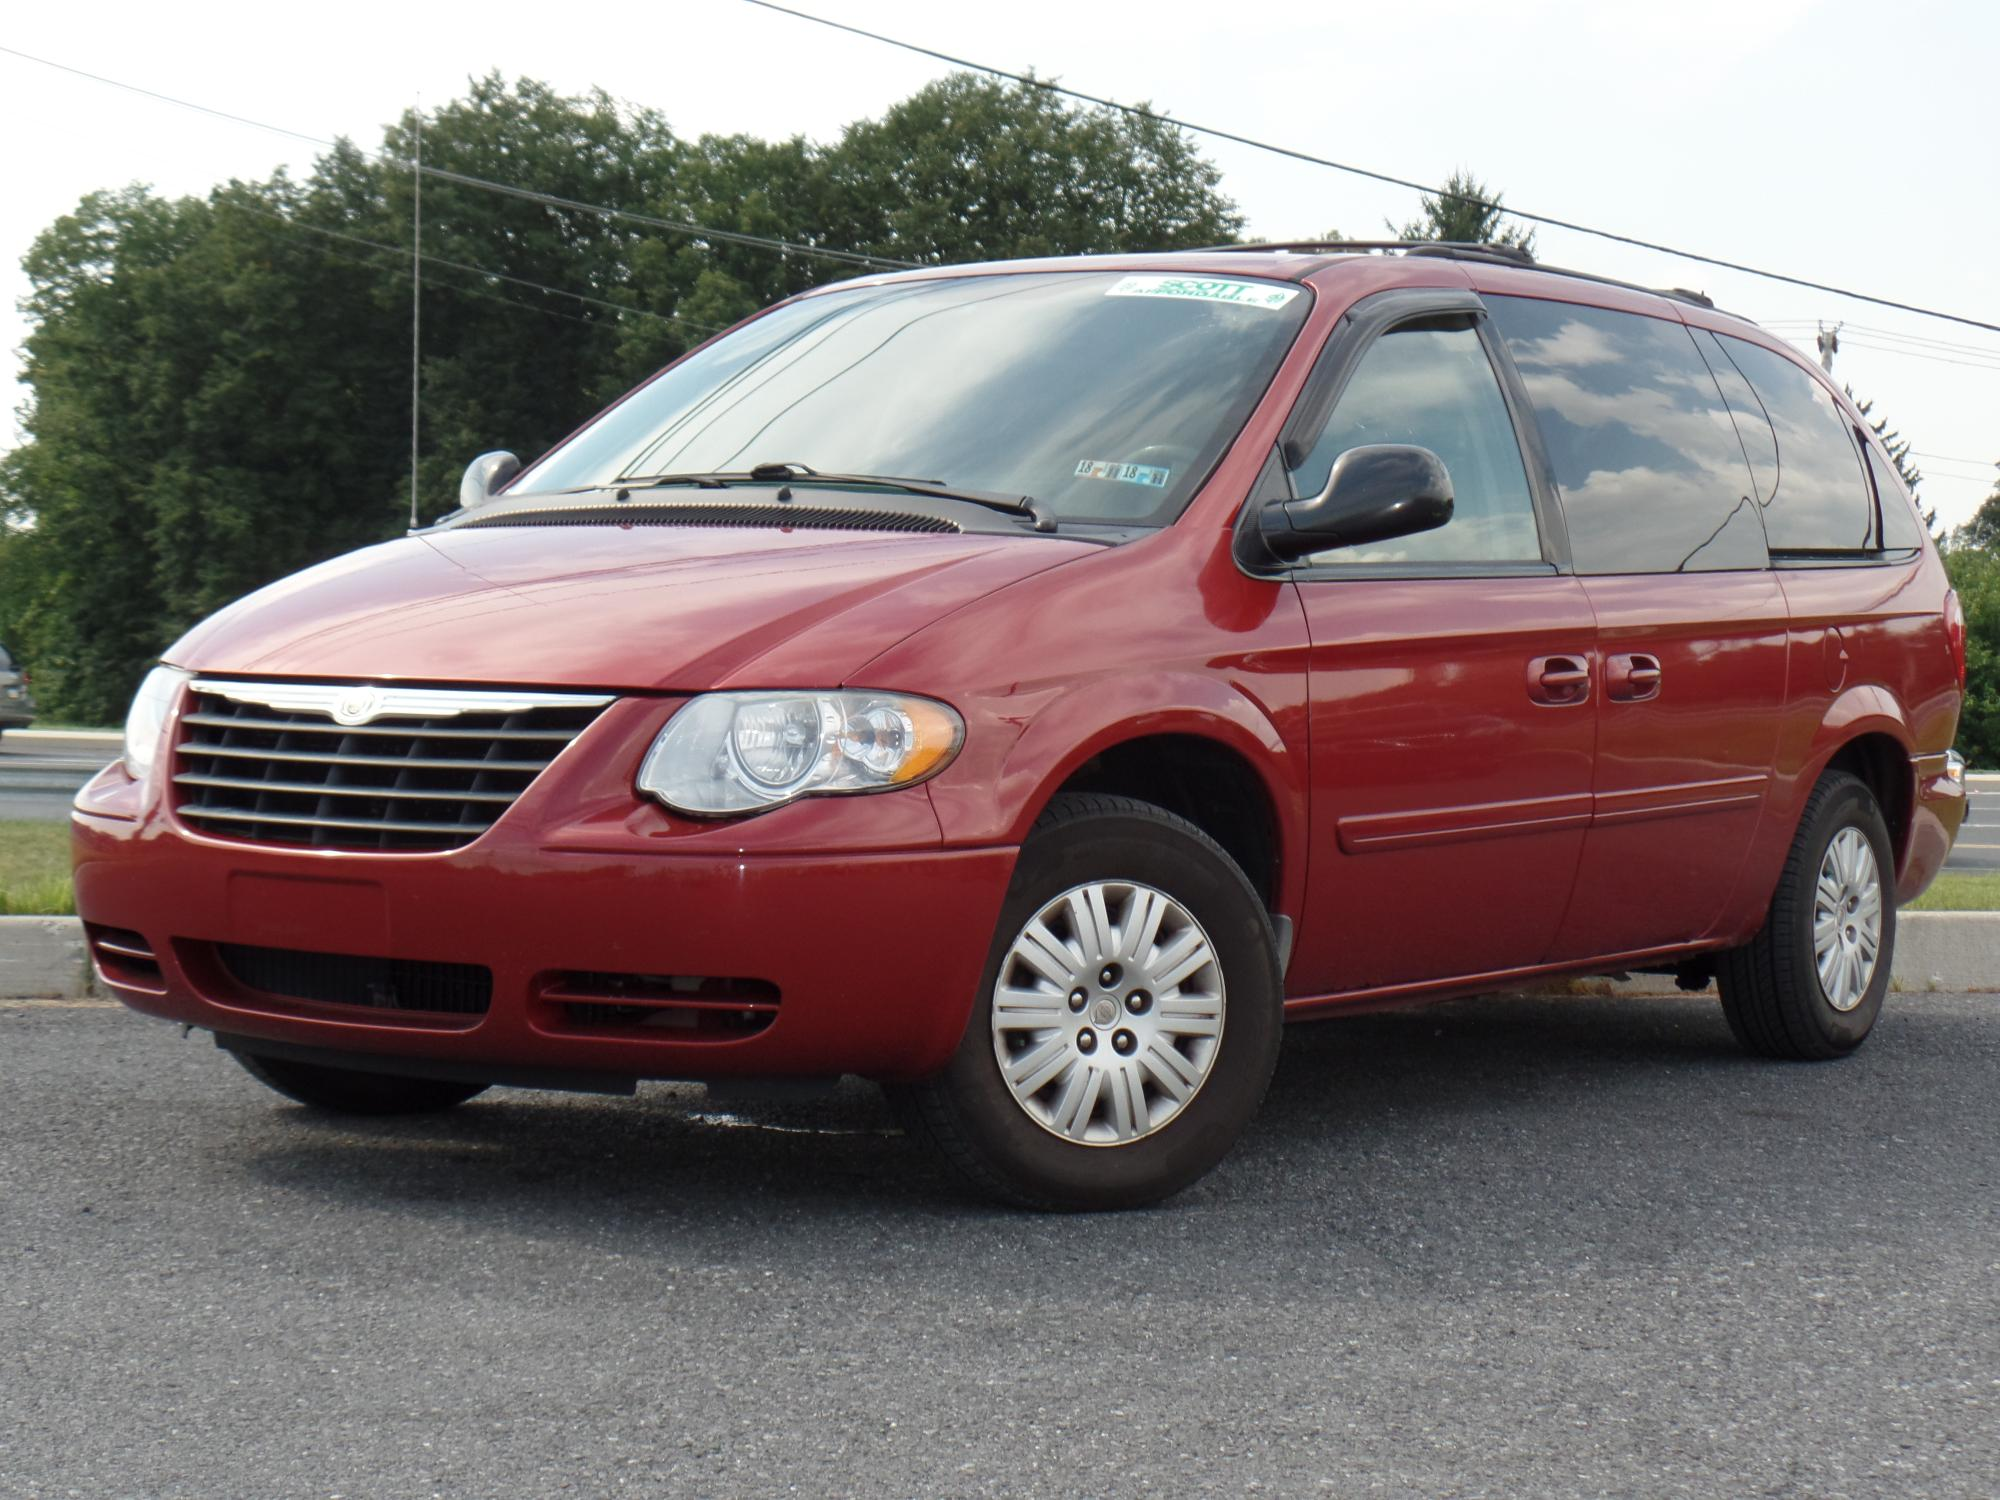 7-16-2018_2006_Chrysler_Town_and_Country_738063__1_.JPG